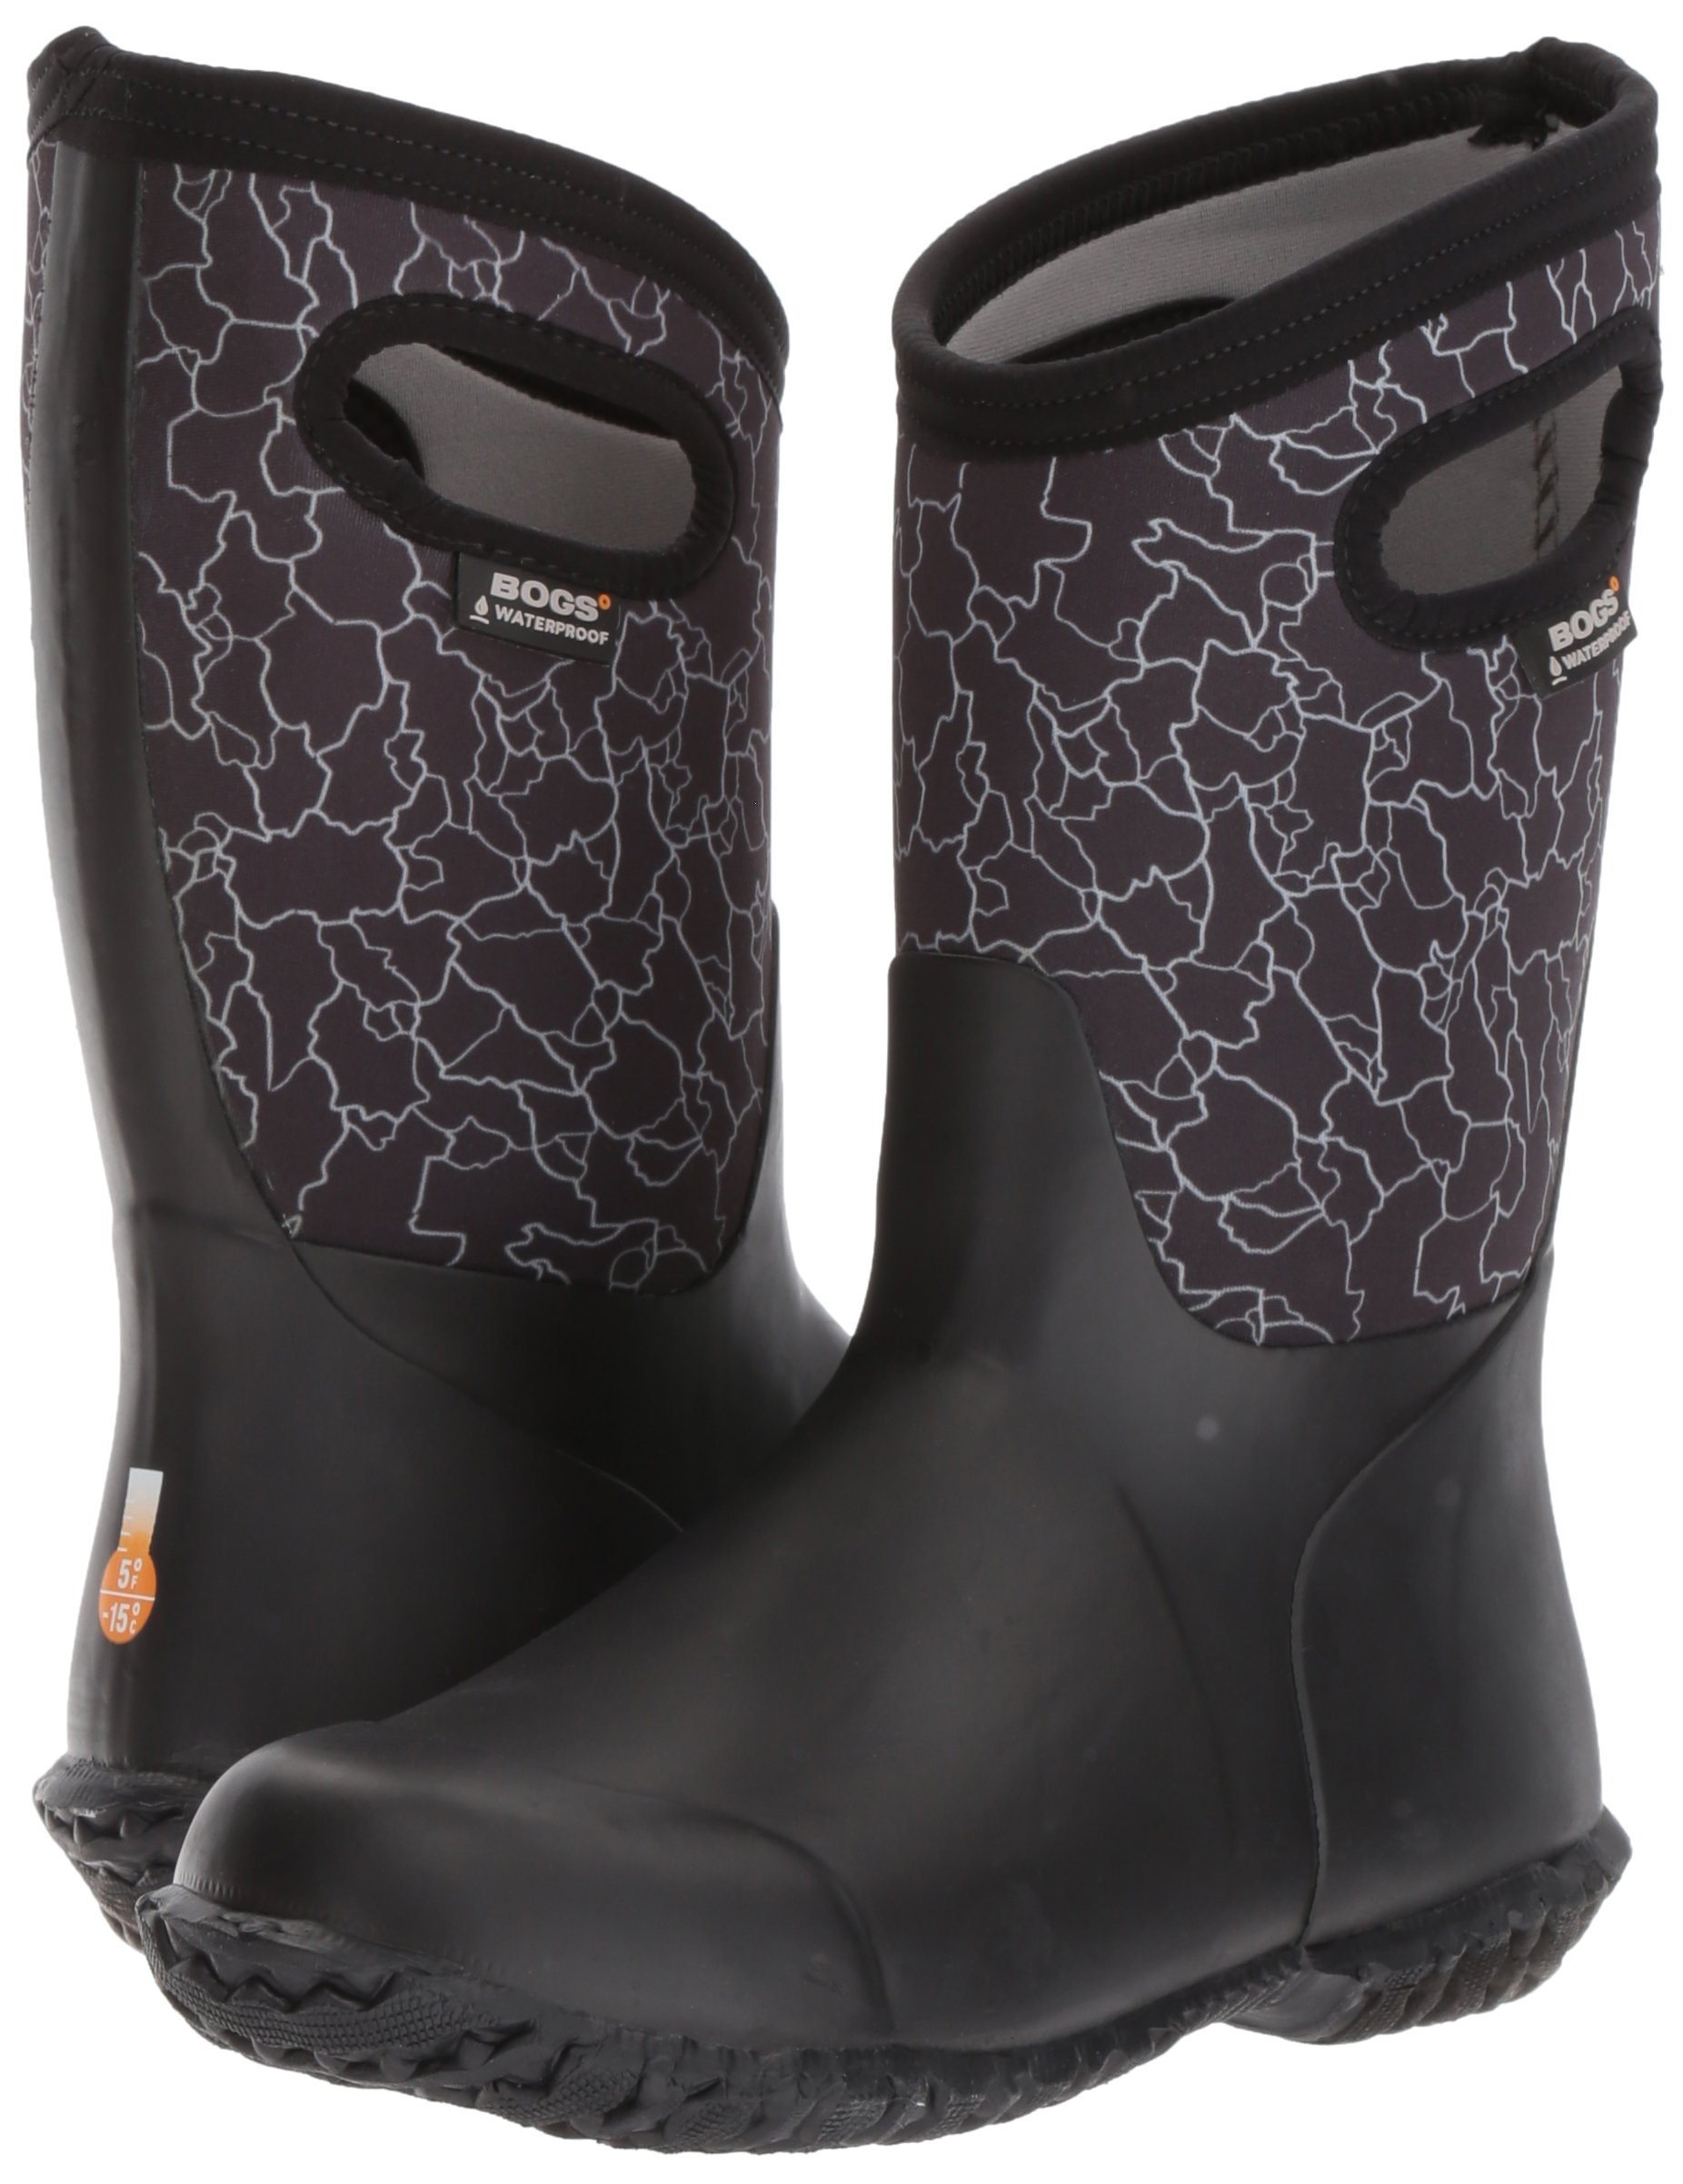 Bogs Durham Kids/Toddler Waterproof Snow Boot for Boys and Girls, Crackle Print/Black/Multi, 12 M US Little Kid by Bogs (Image #6)